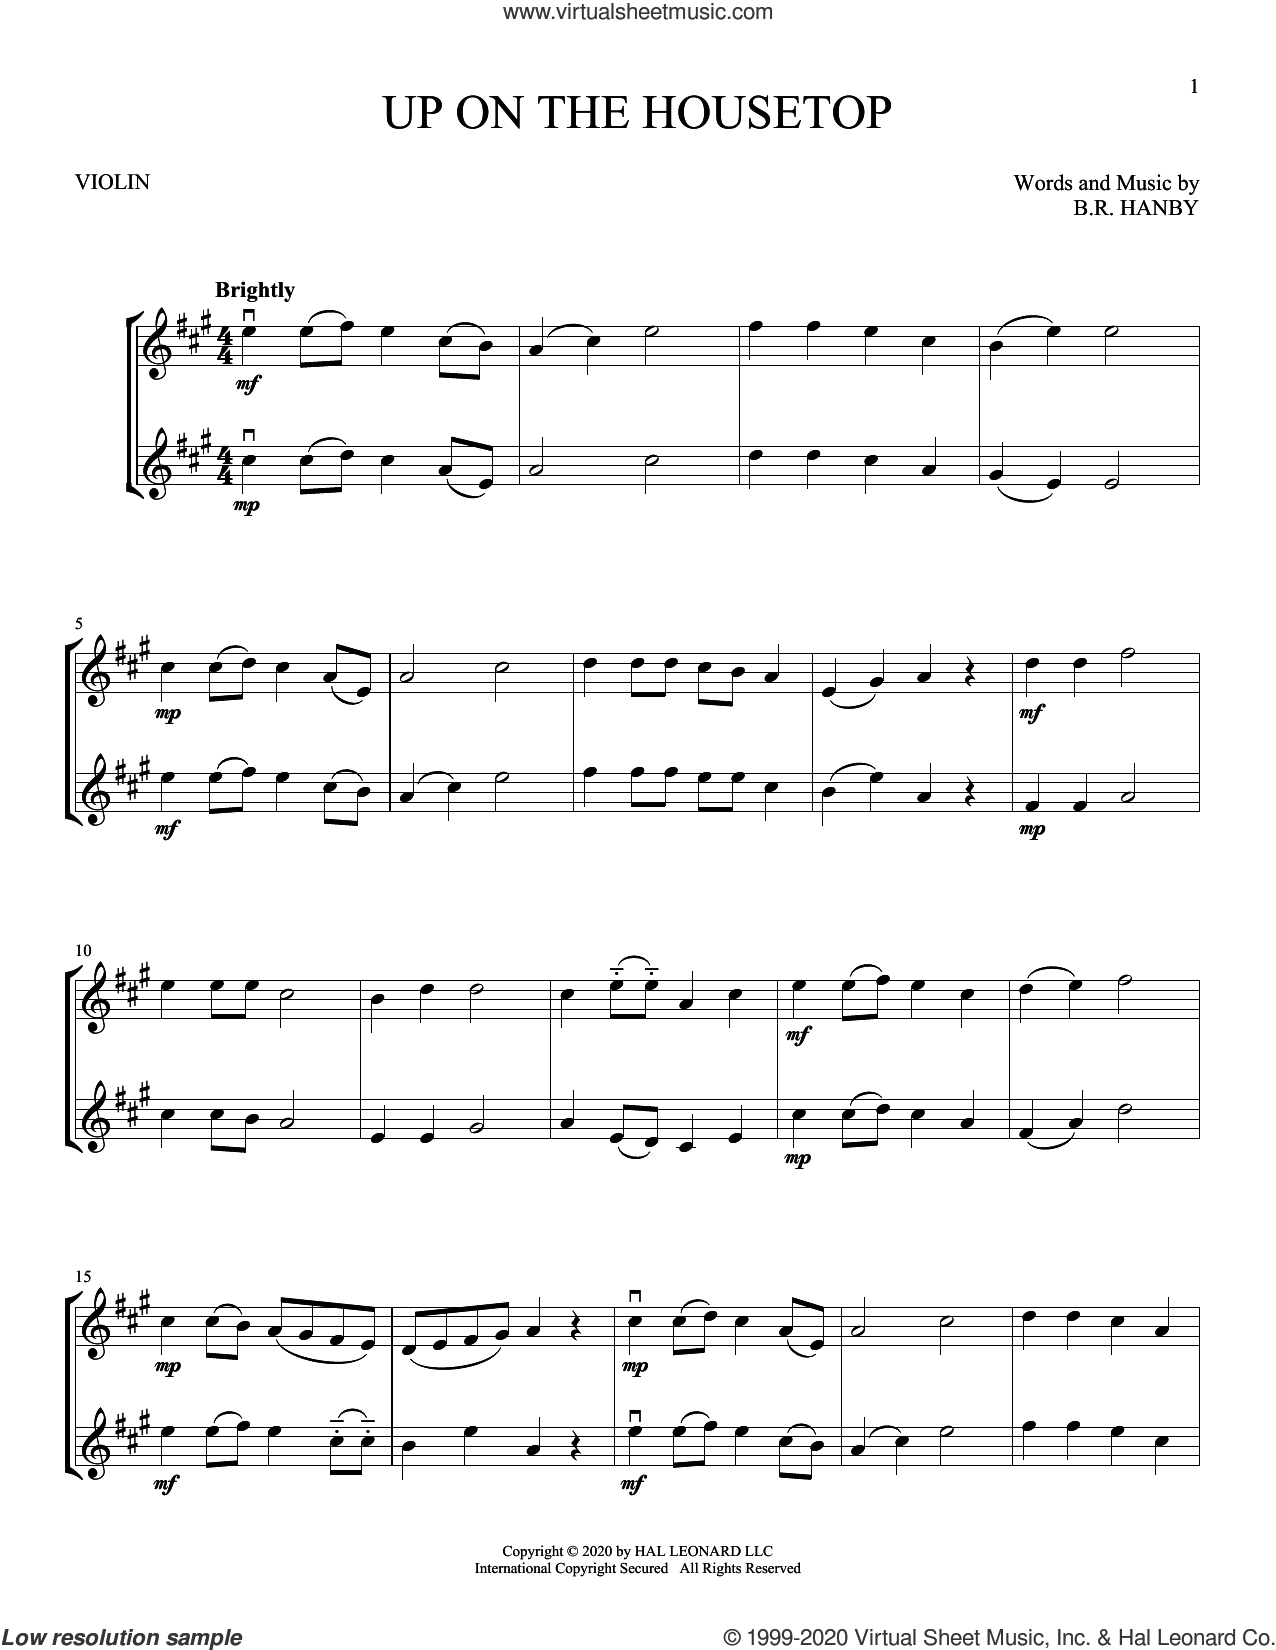 Up On The Housetop sheet music for two violins (duets, violin duets) by Benjamin Hanby, intermediate skill level